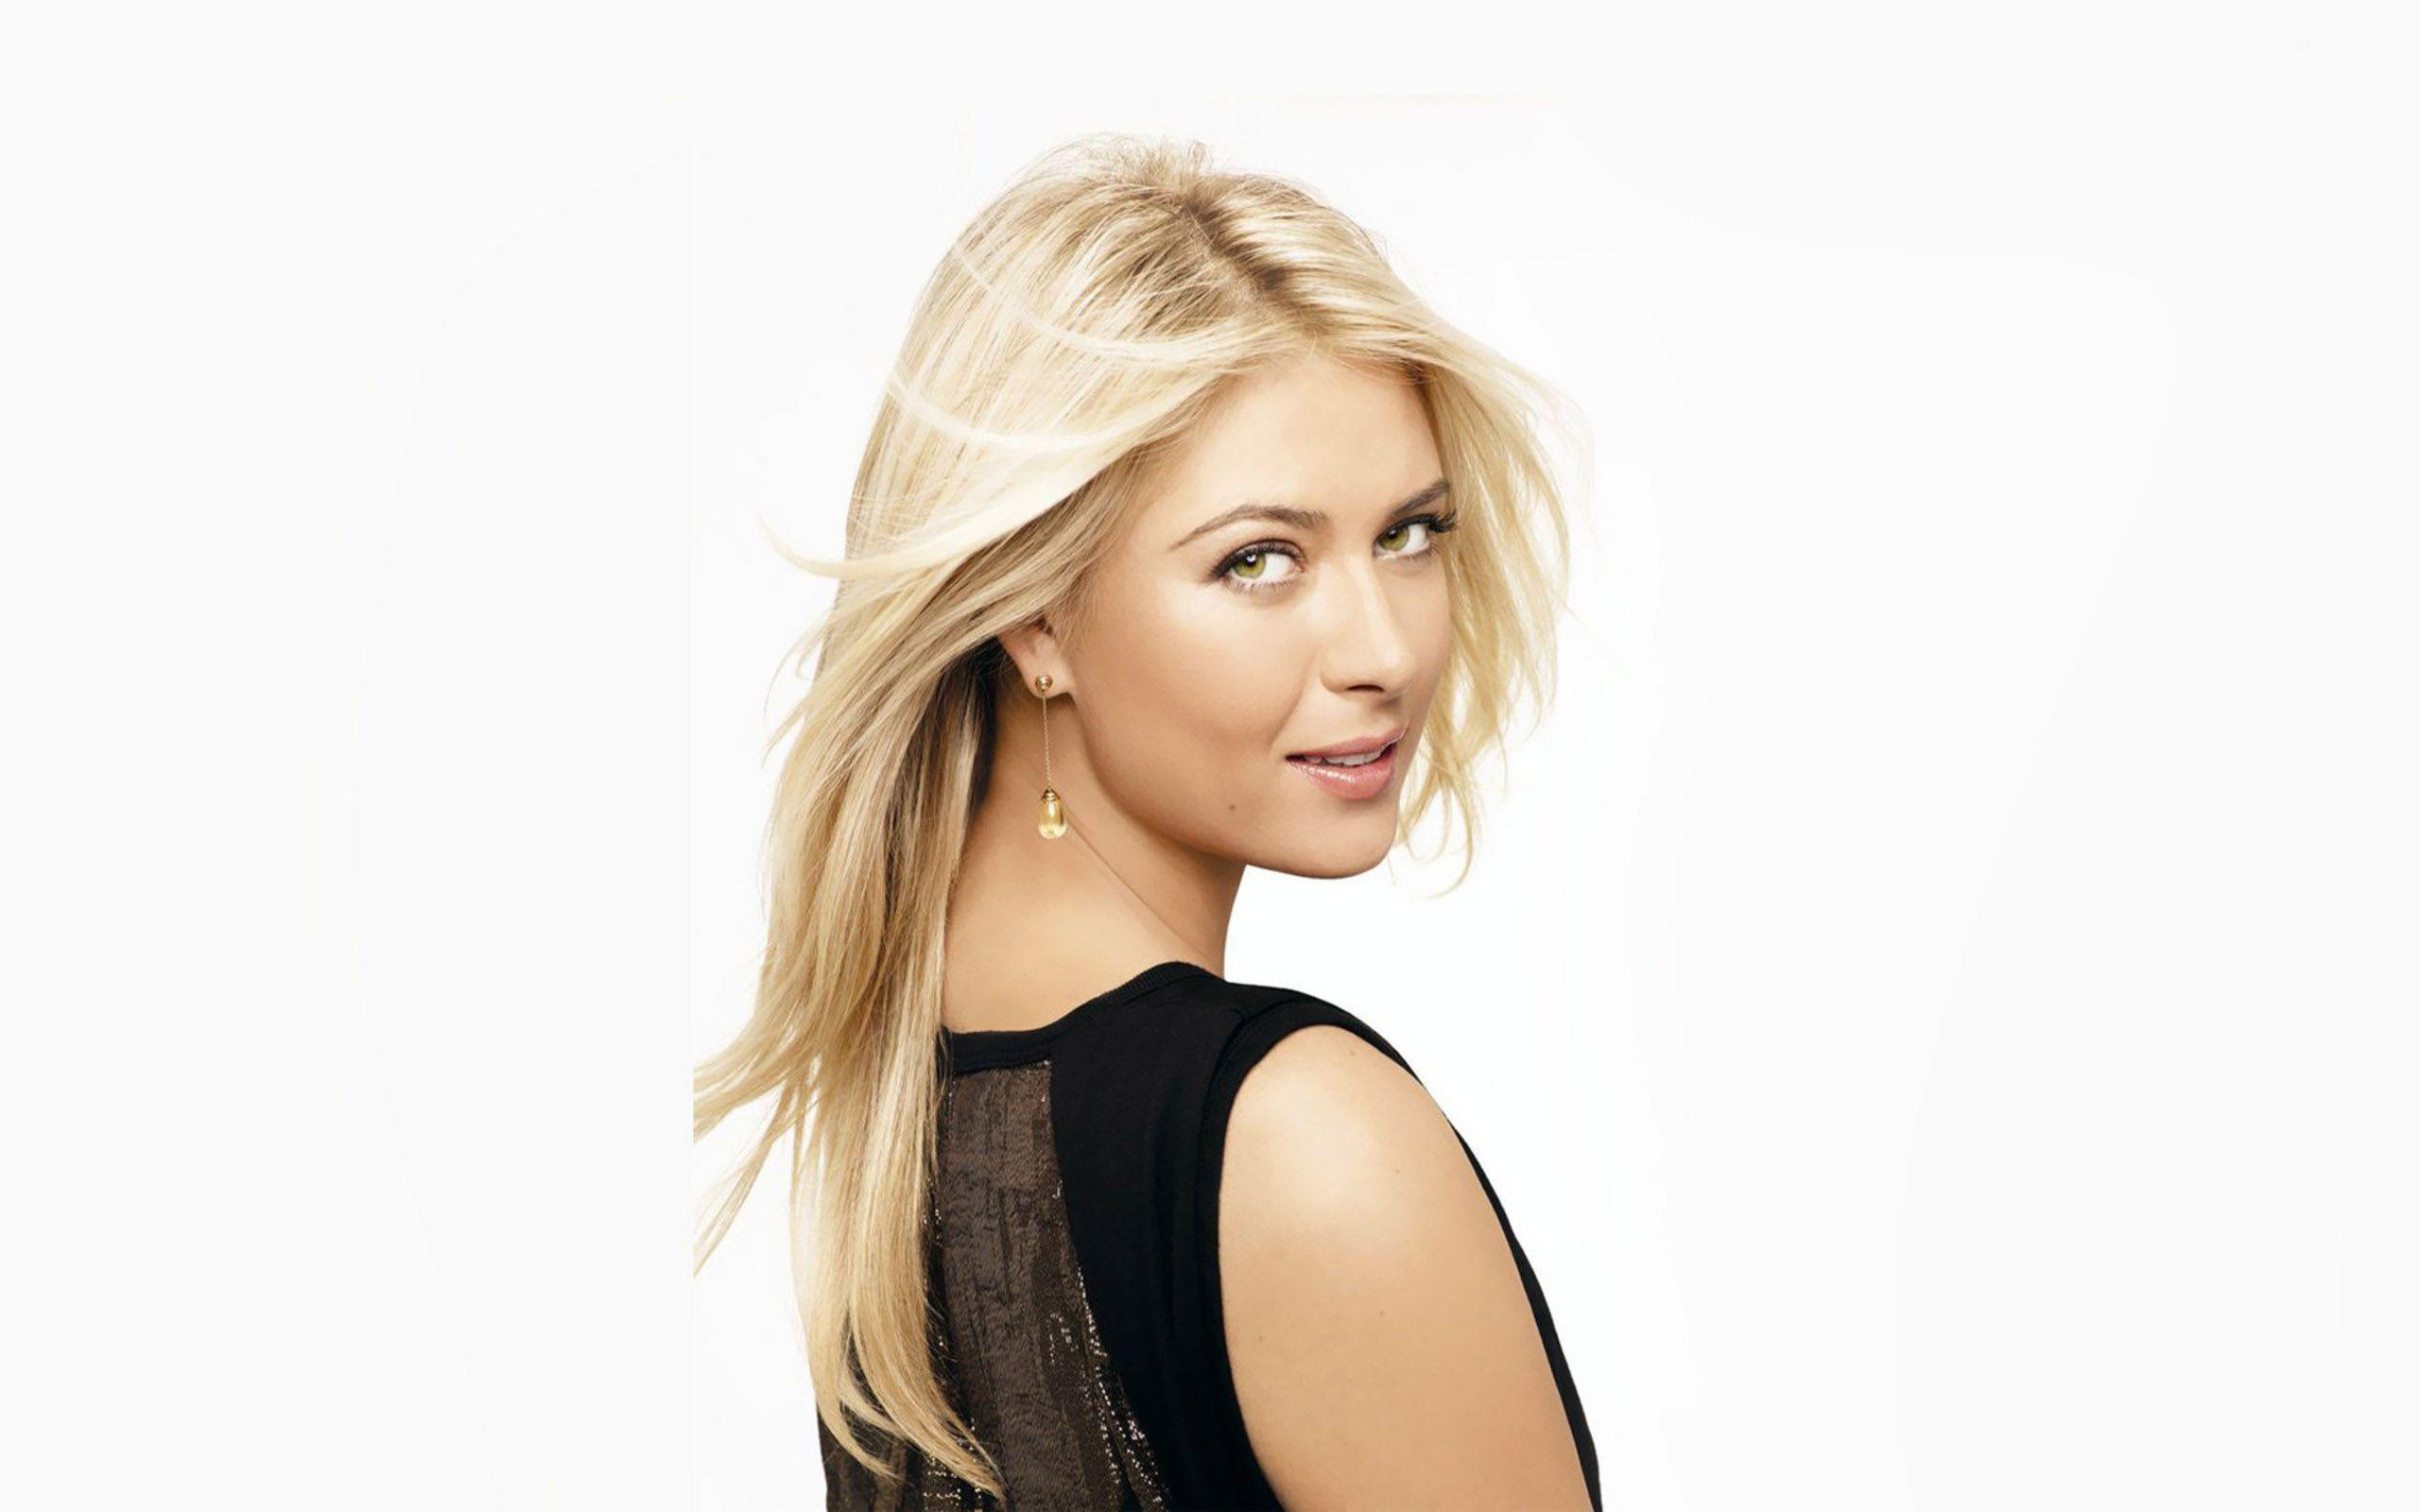 Early life Maria Sharapova was born on April 19 1987 in Nyagan Russian SFSR Her parents Yuri and Yelena are from Gomel Belarussian SSR Concerned about the